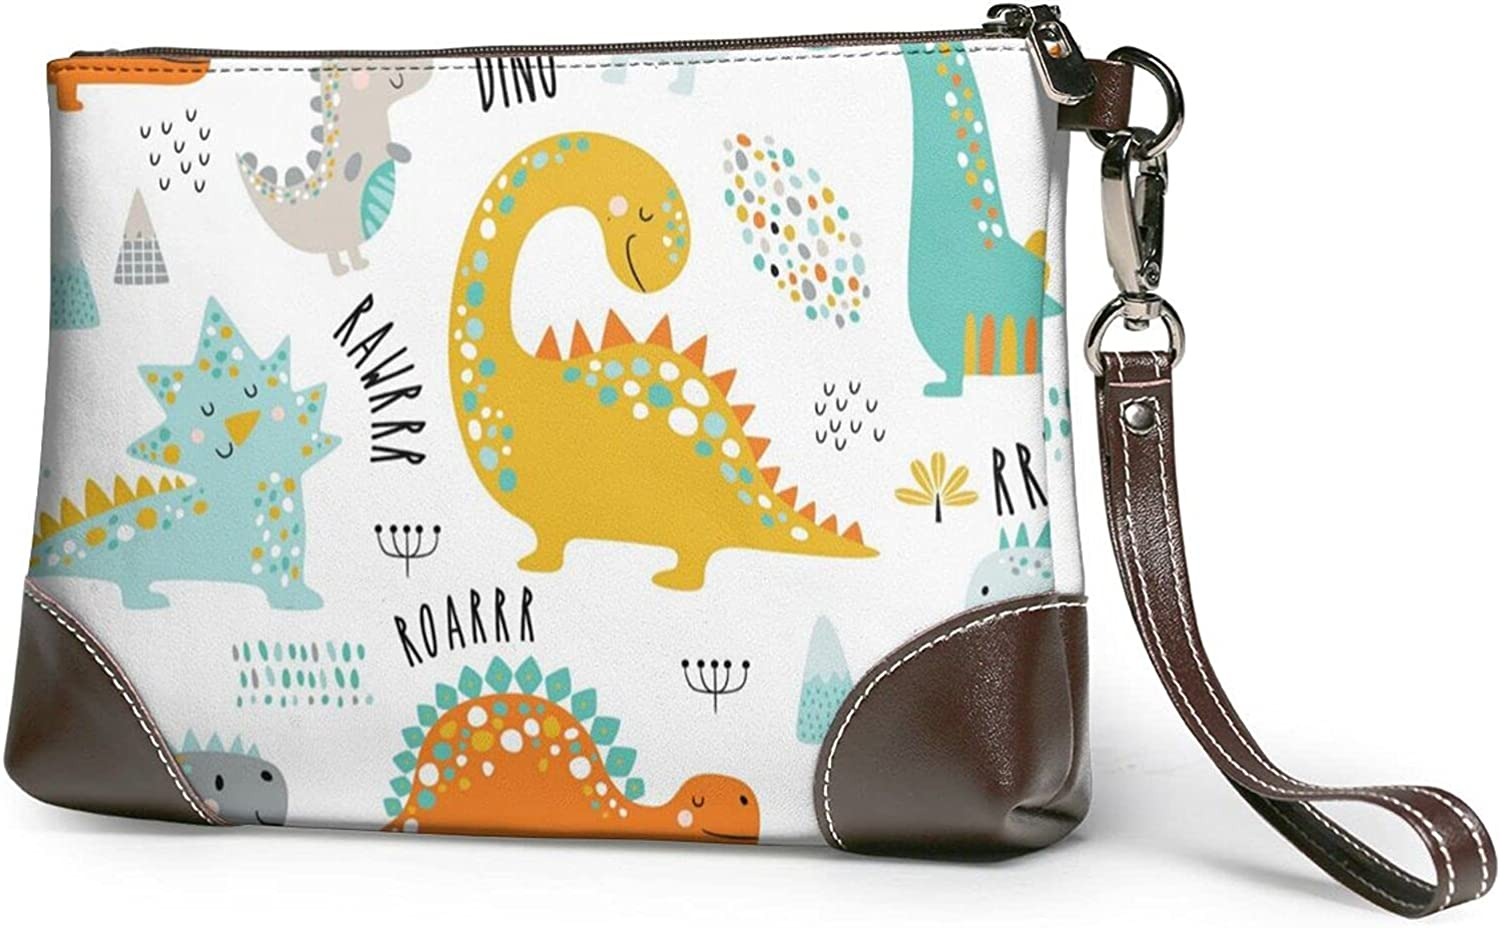 Colorful Hen Ladies Leather-Handbag Design Max 86% OFF Cowhide Wristban Ultra-Cheap Deals Real